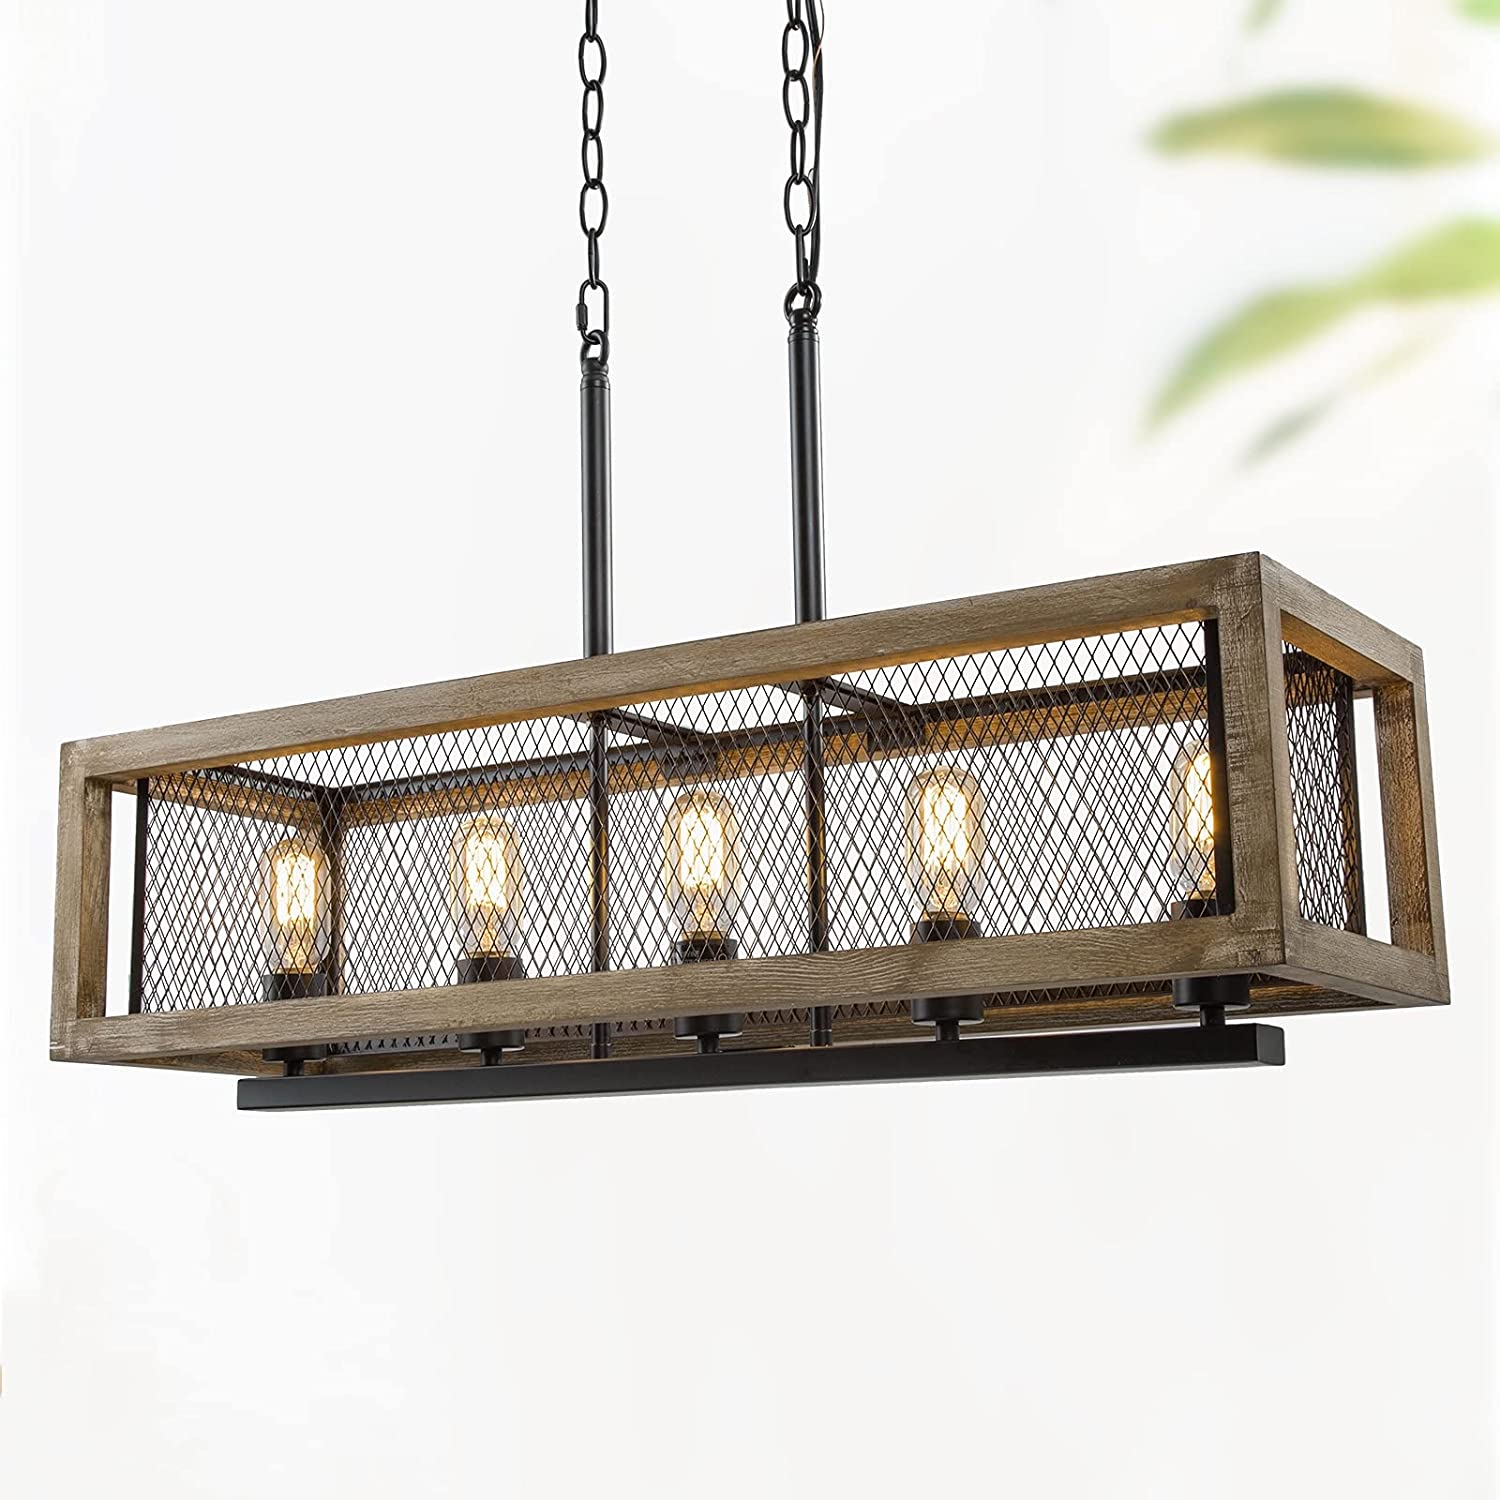 Farmhouse Chandelier 5 Light Rectangular Chandeliers For Dining Room 32 Rustic Kitchen Island Lighting With Wood And Black Metal Finish Amazon Com